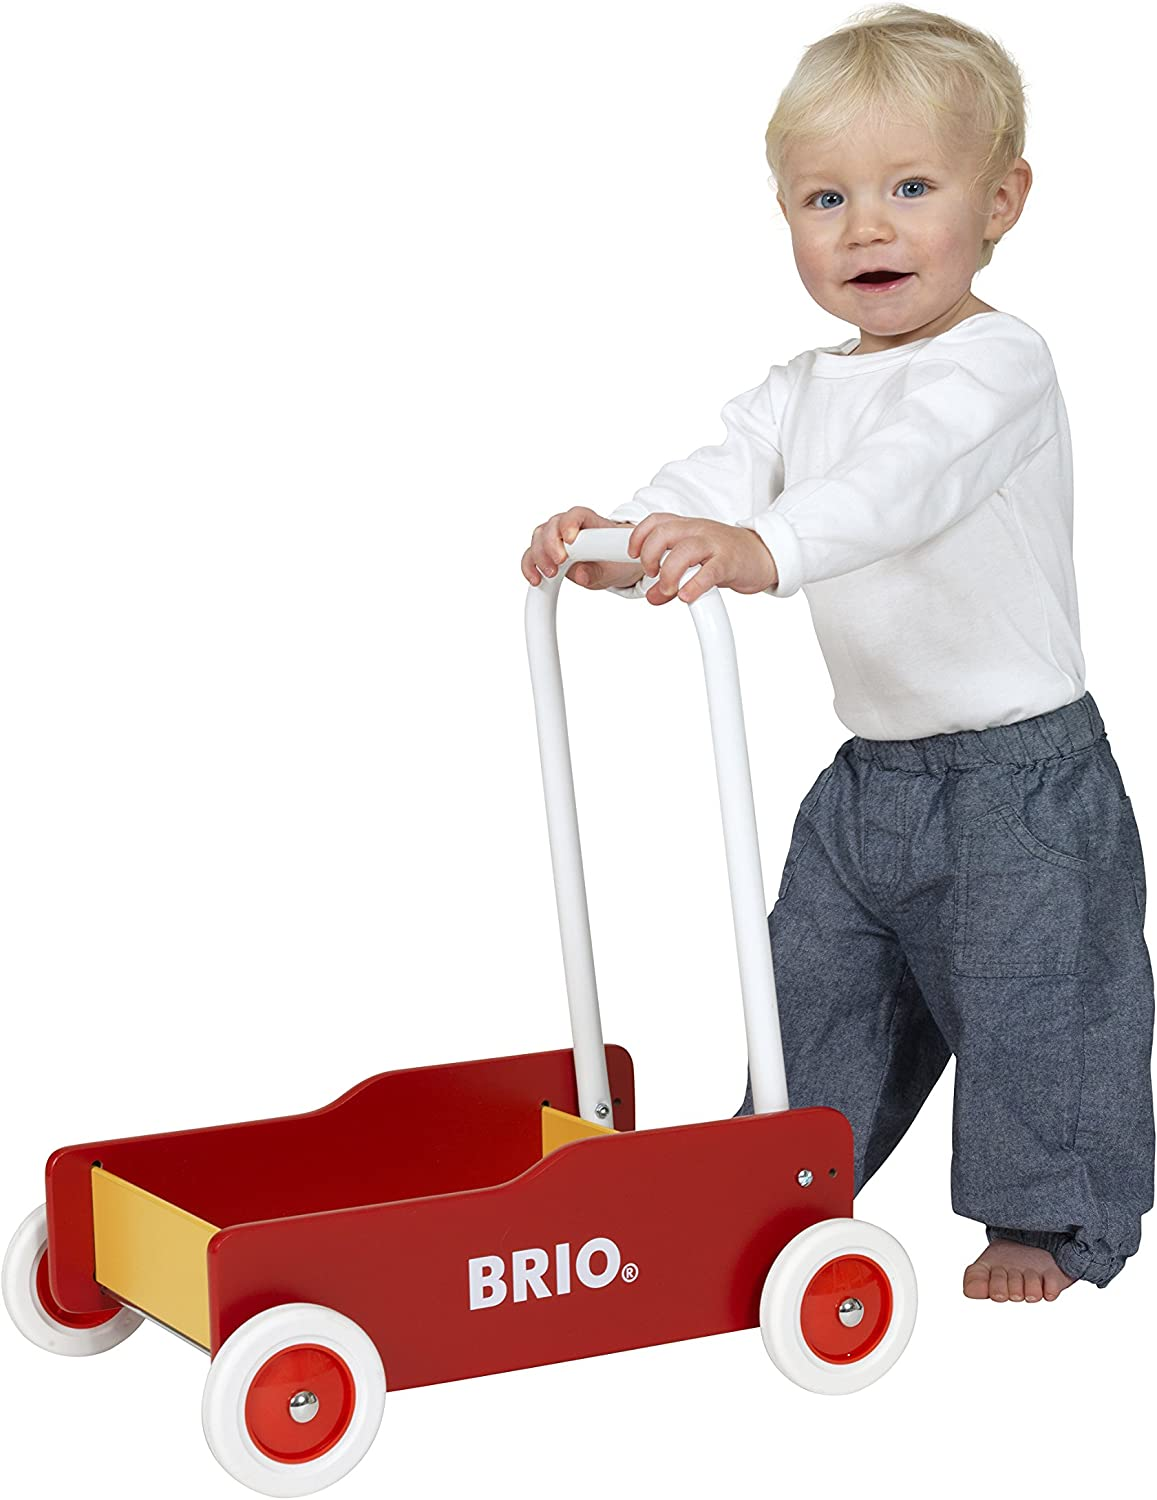 BRIO 31350 - Toddler Wobbler   The Perfect Toy for Newly Mobile Toddlers For Kids Ages 9 Months and Up